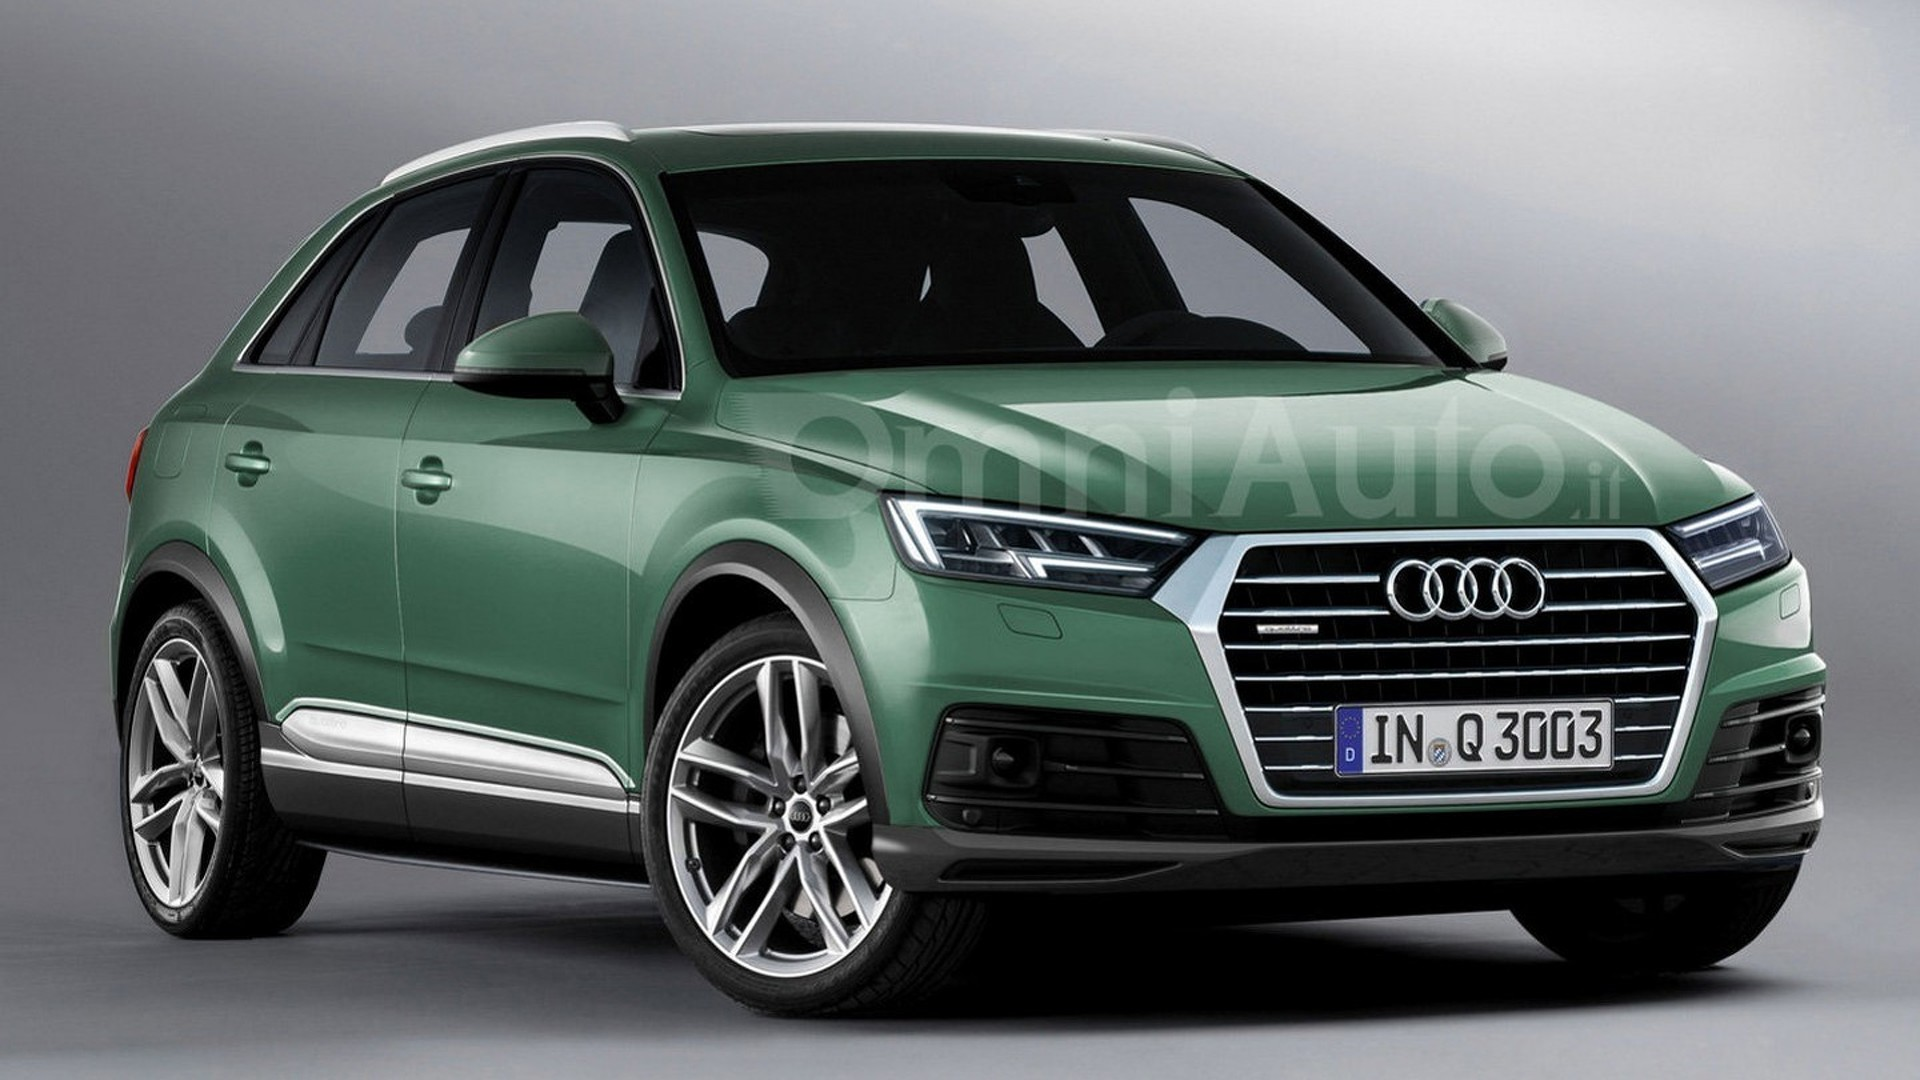 Audi Q Render Points Towards Predictable Design Evolution - 2018 audi q3